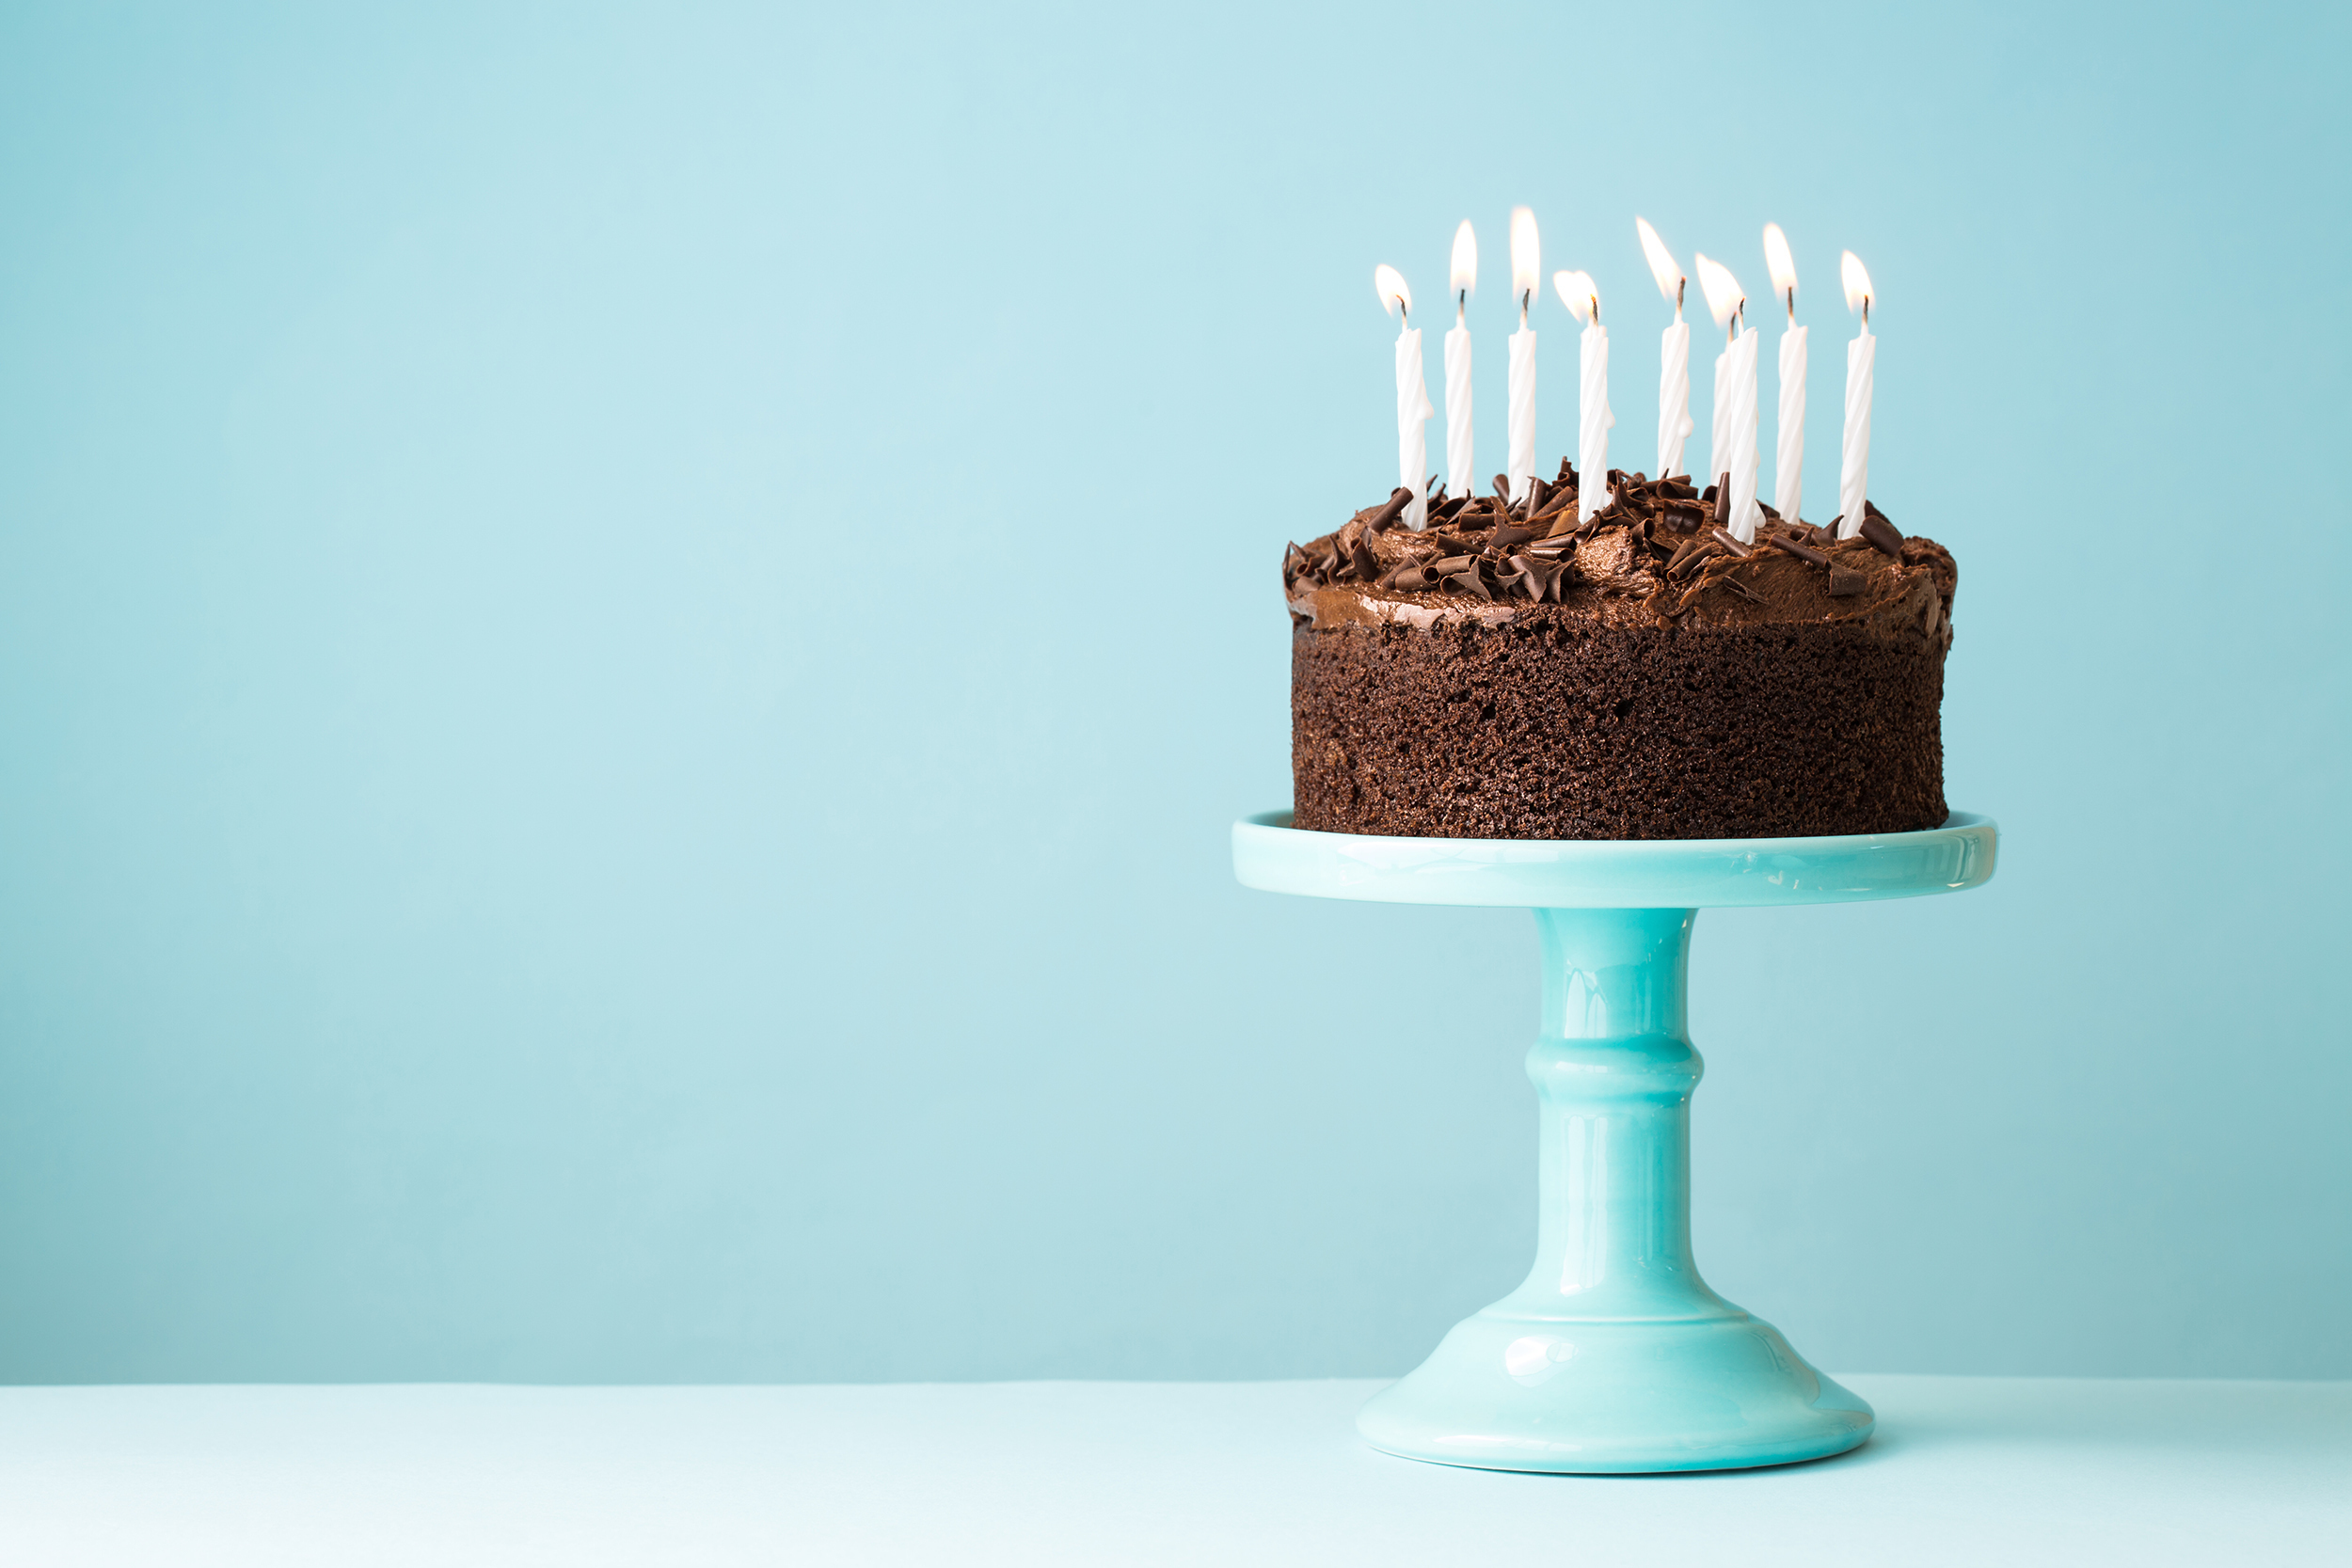 Fiitfu is 5 – 5 Reasons to Connect on Birthdays!